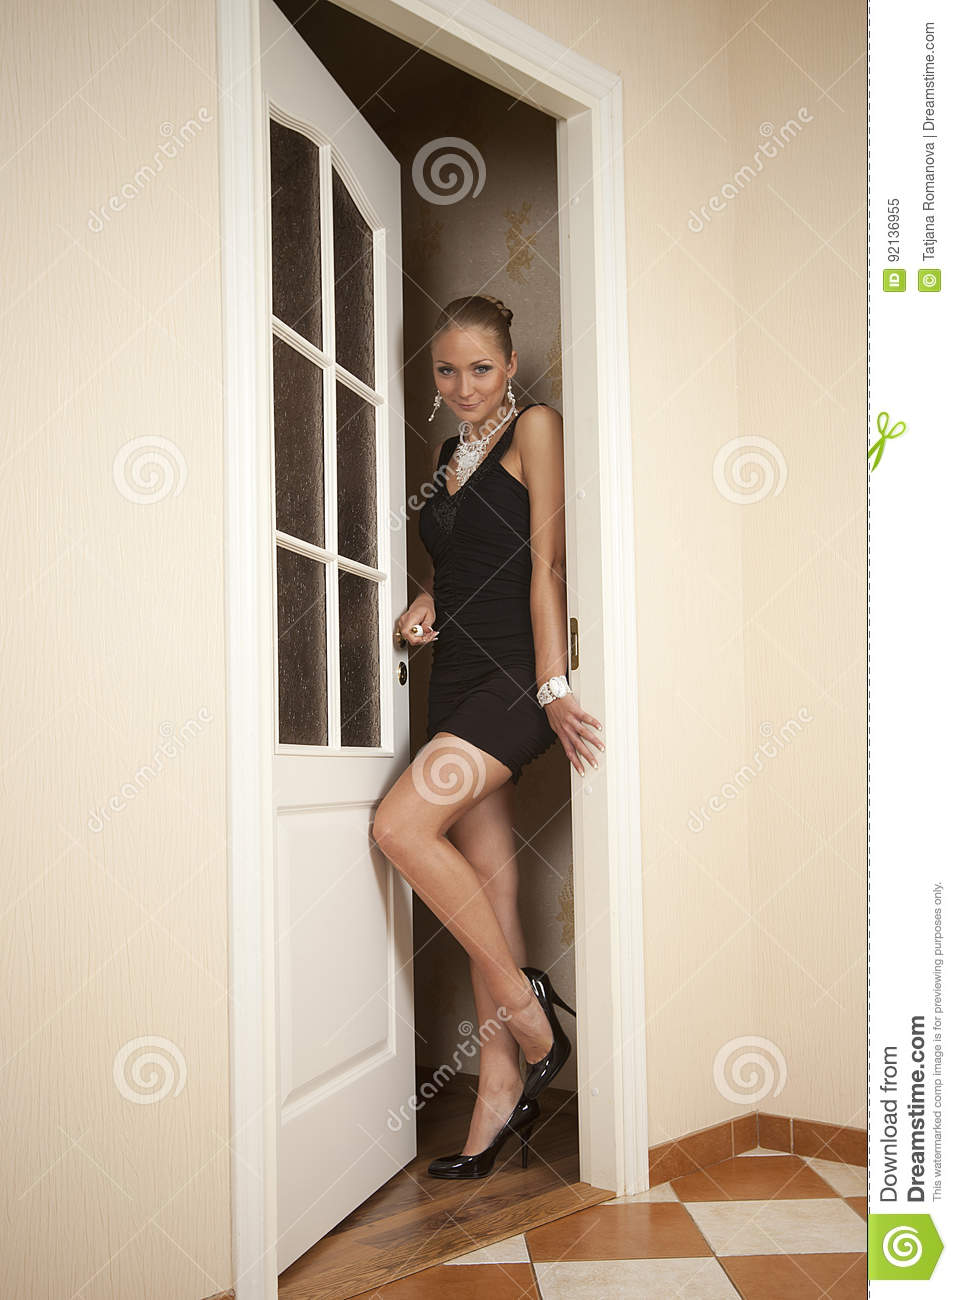 Sexy woman goes out the door